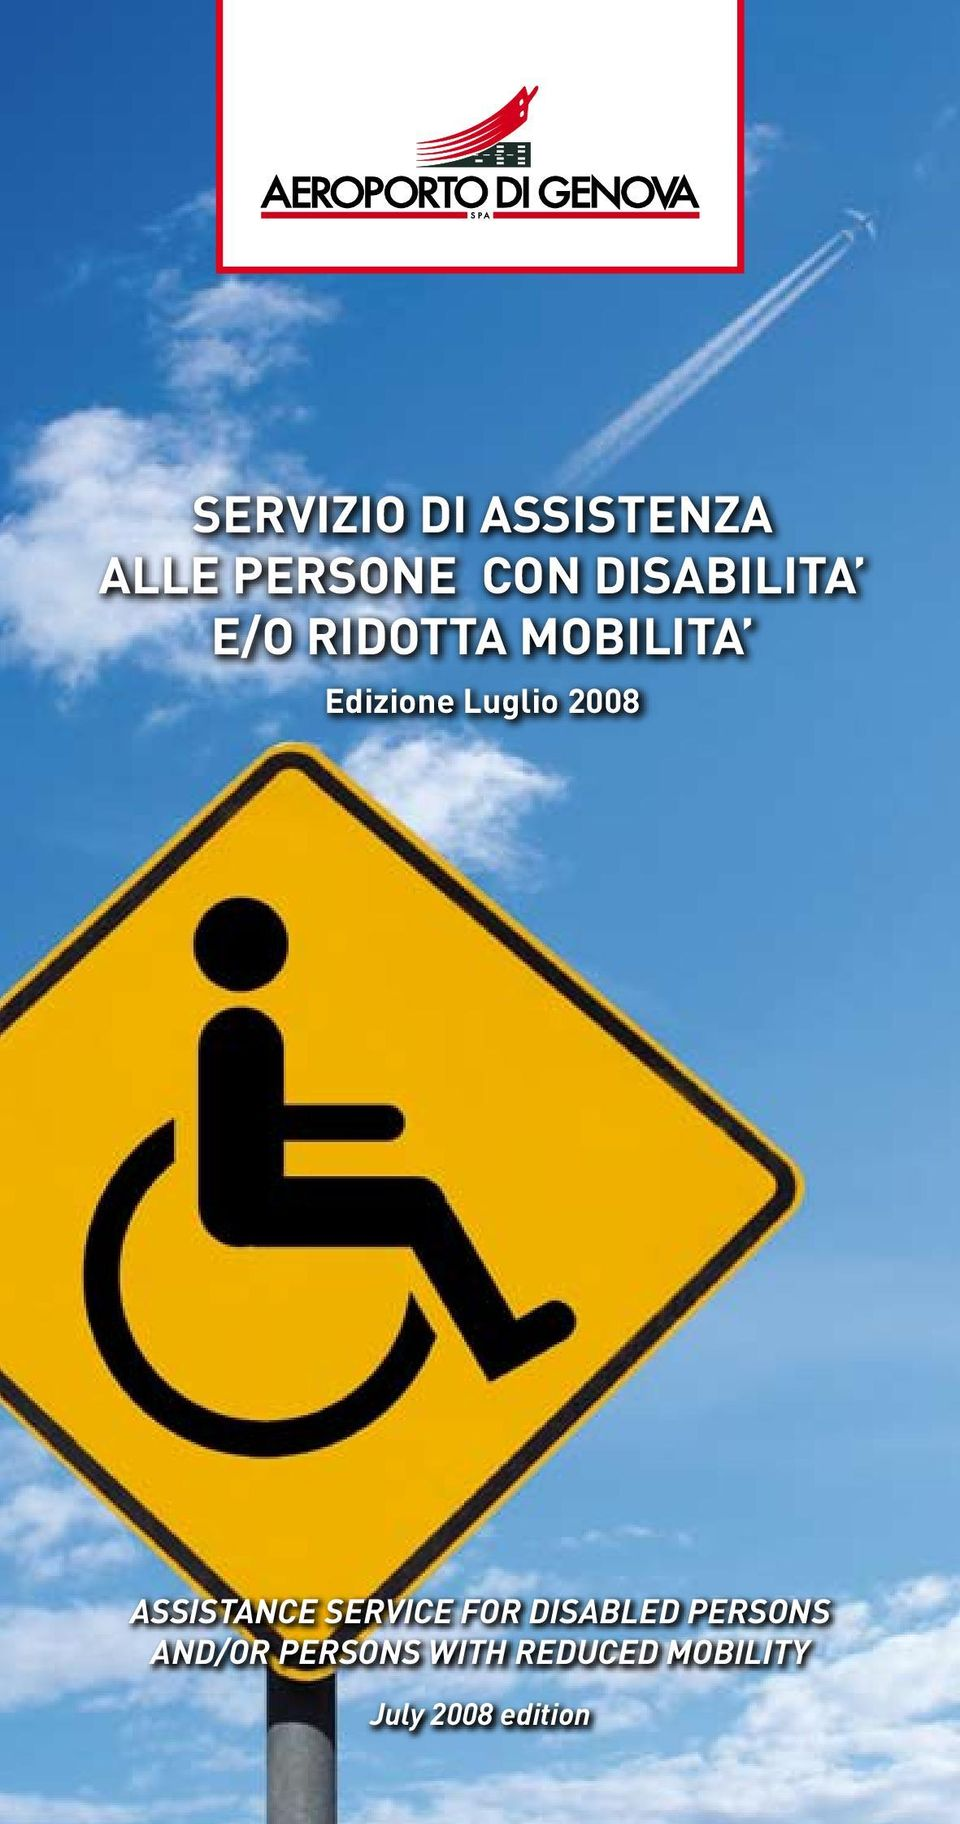 Luglio 008 ASSISTANCE SERVICE FOR DISABLED